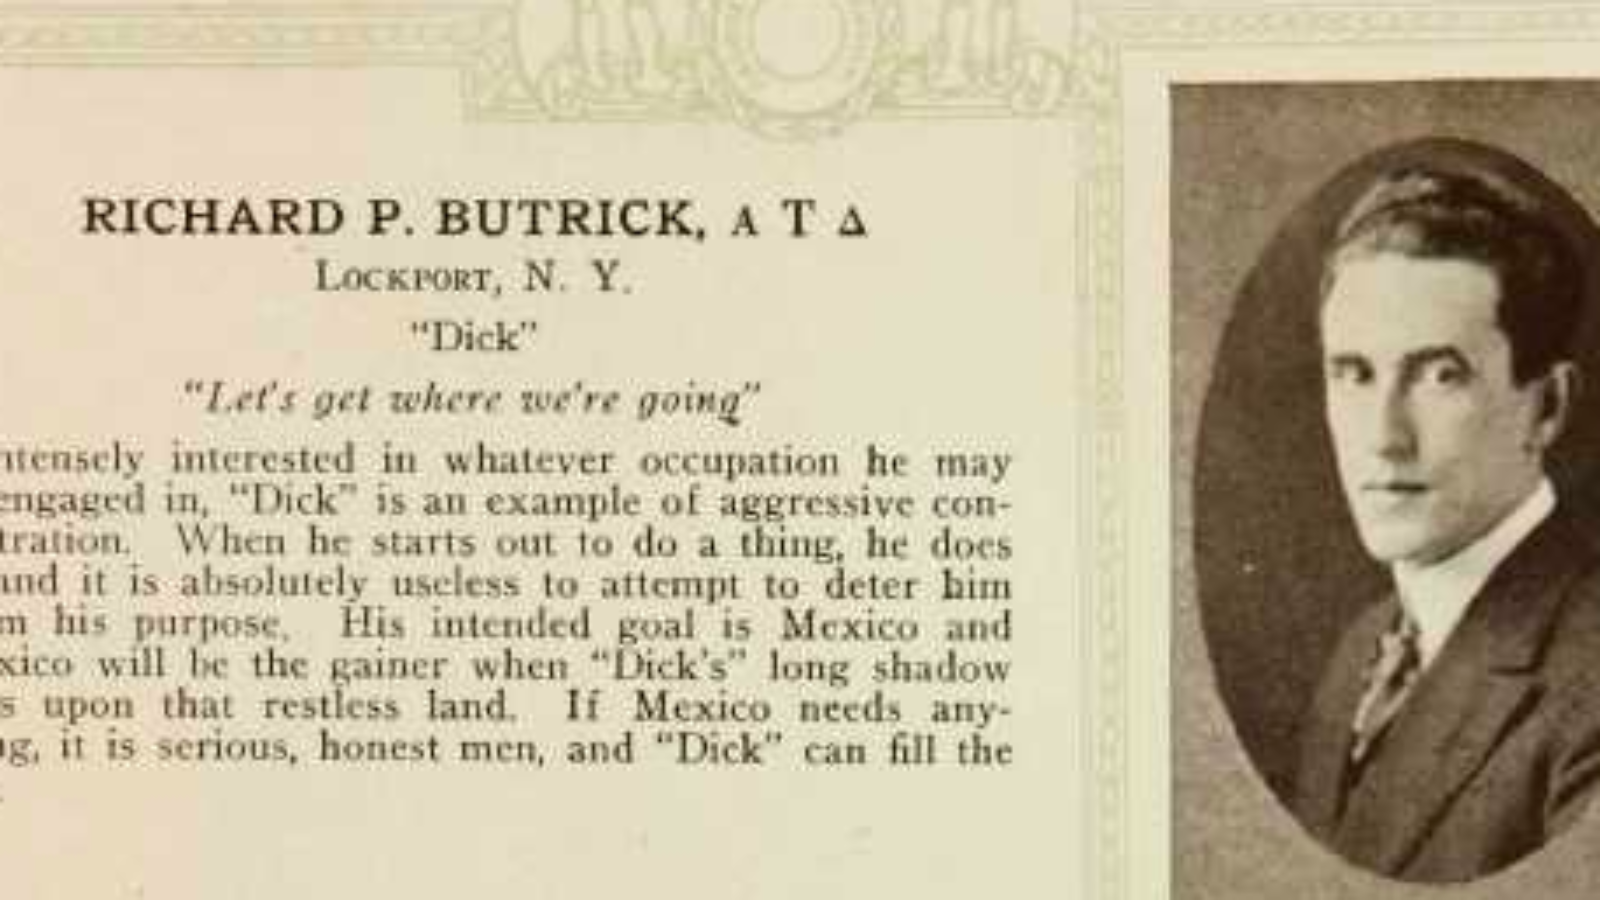 Richard P. Butrick yearbook photo